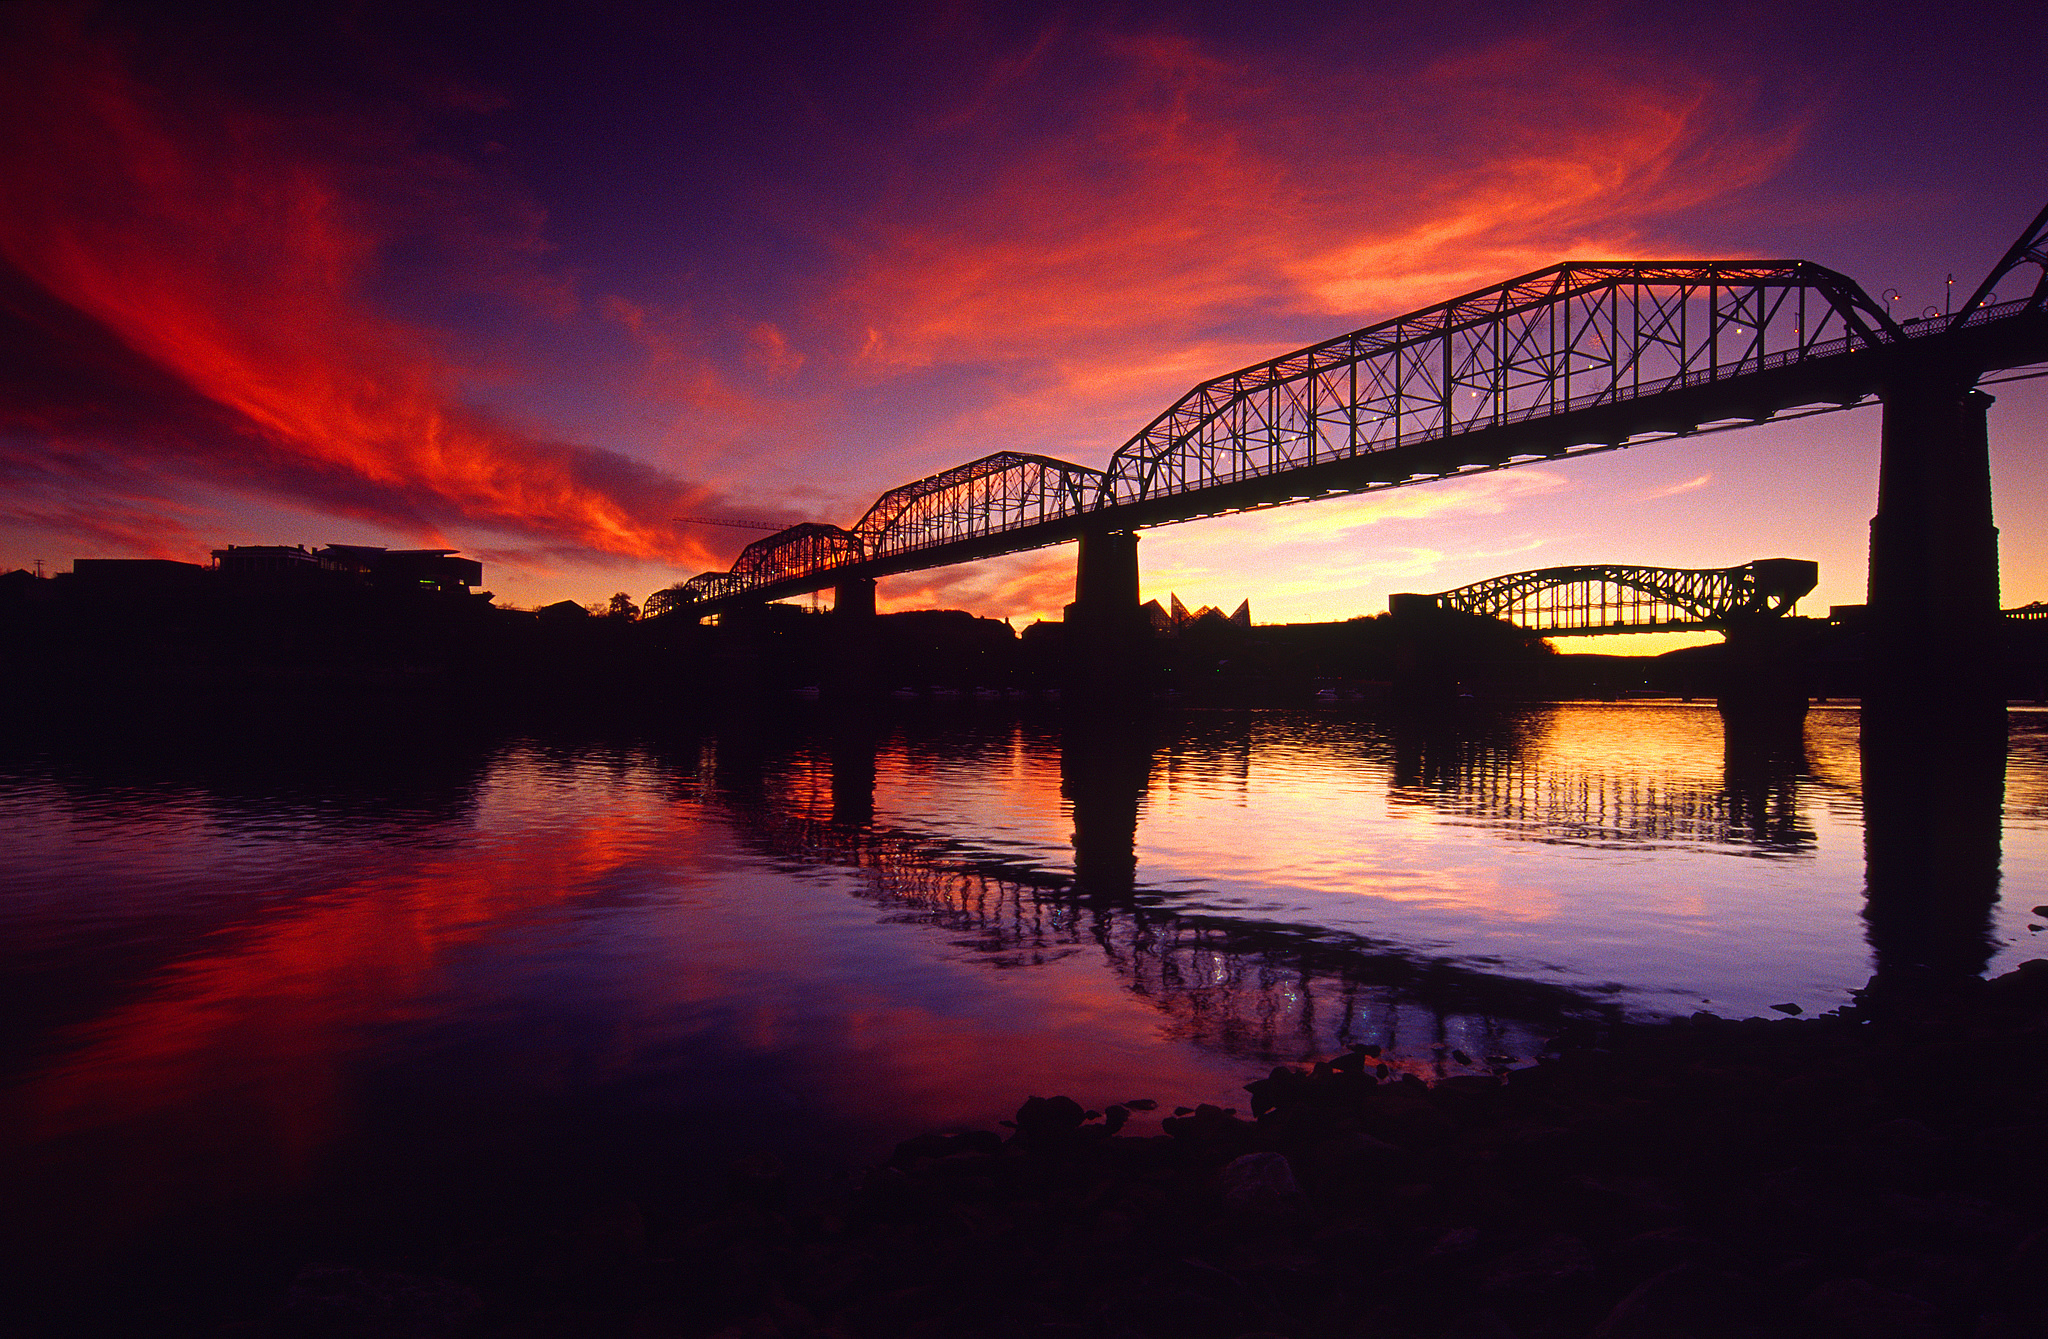 <div class='title'>           A Chattanooga Sunset         </div>                 <div class='description'>           The sunset lights up the sky over downtown Chattanooga, Tennessee         </div>